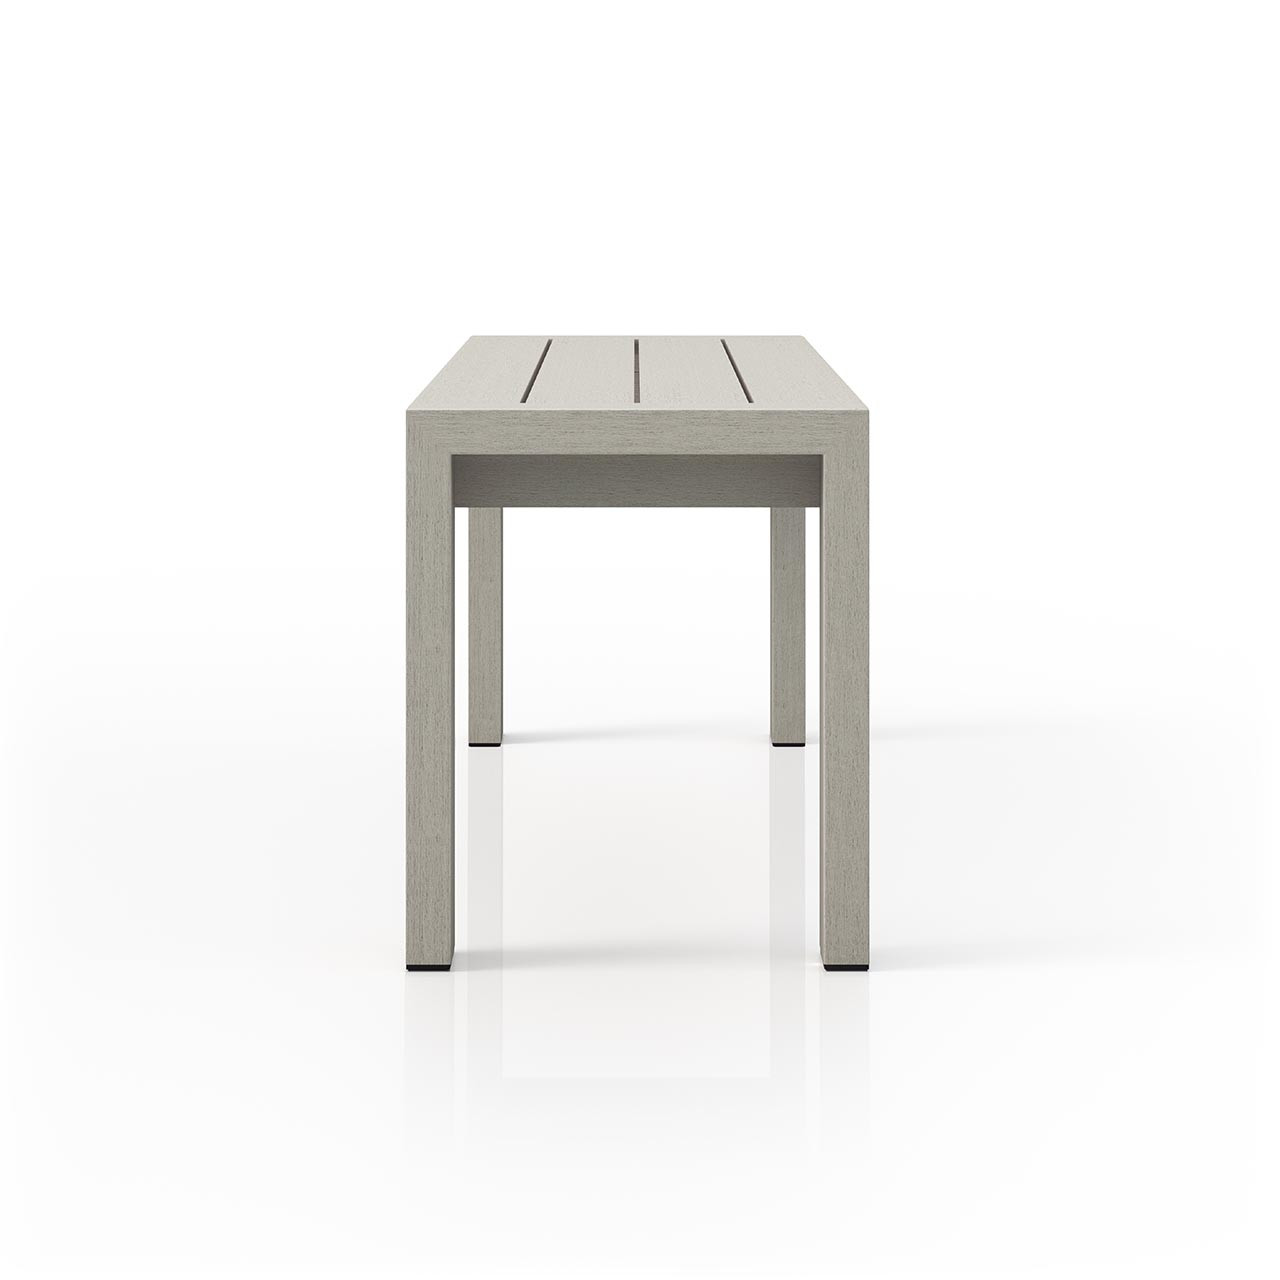 Montel Outdoor Dining Bench